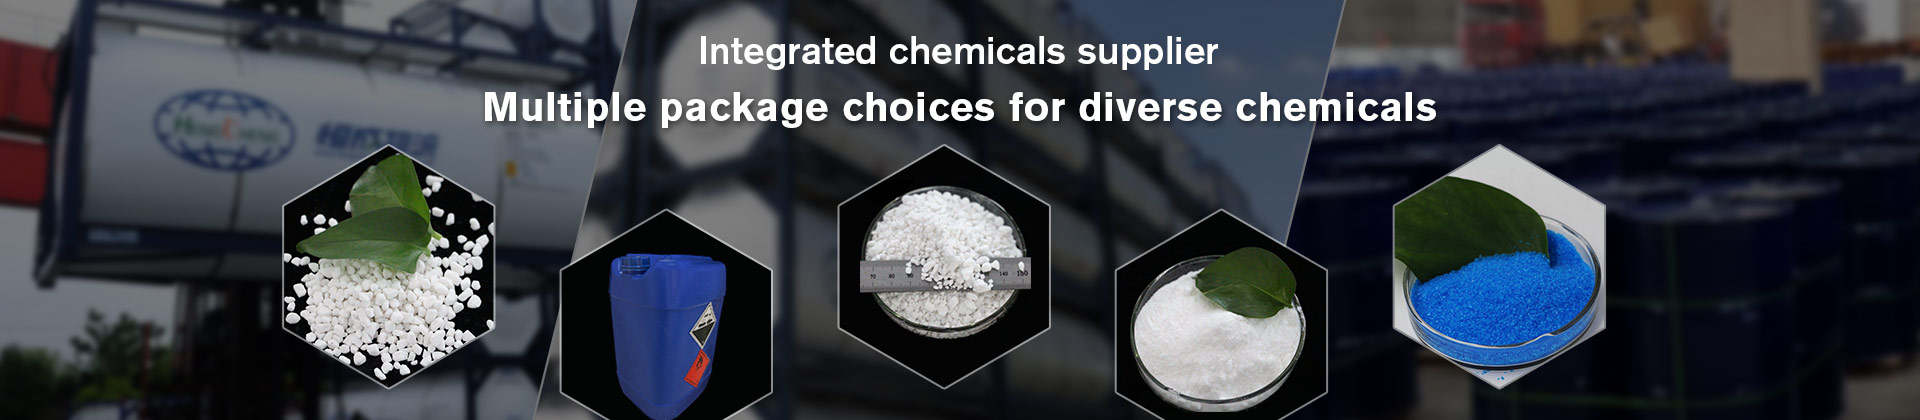 Integrated Chemicals